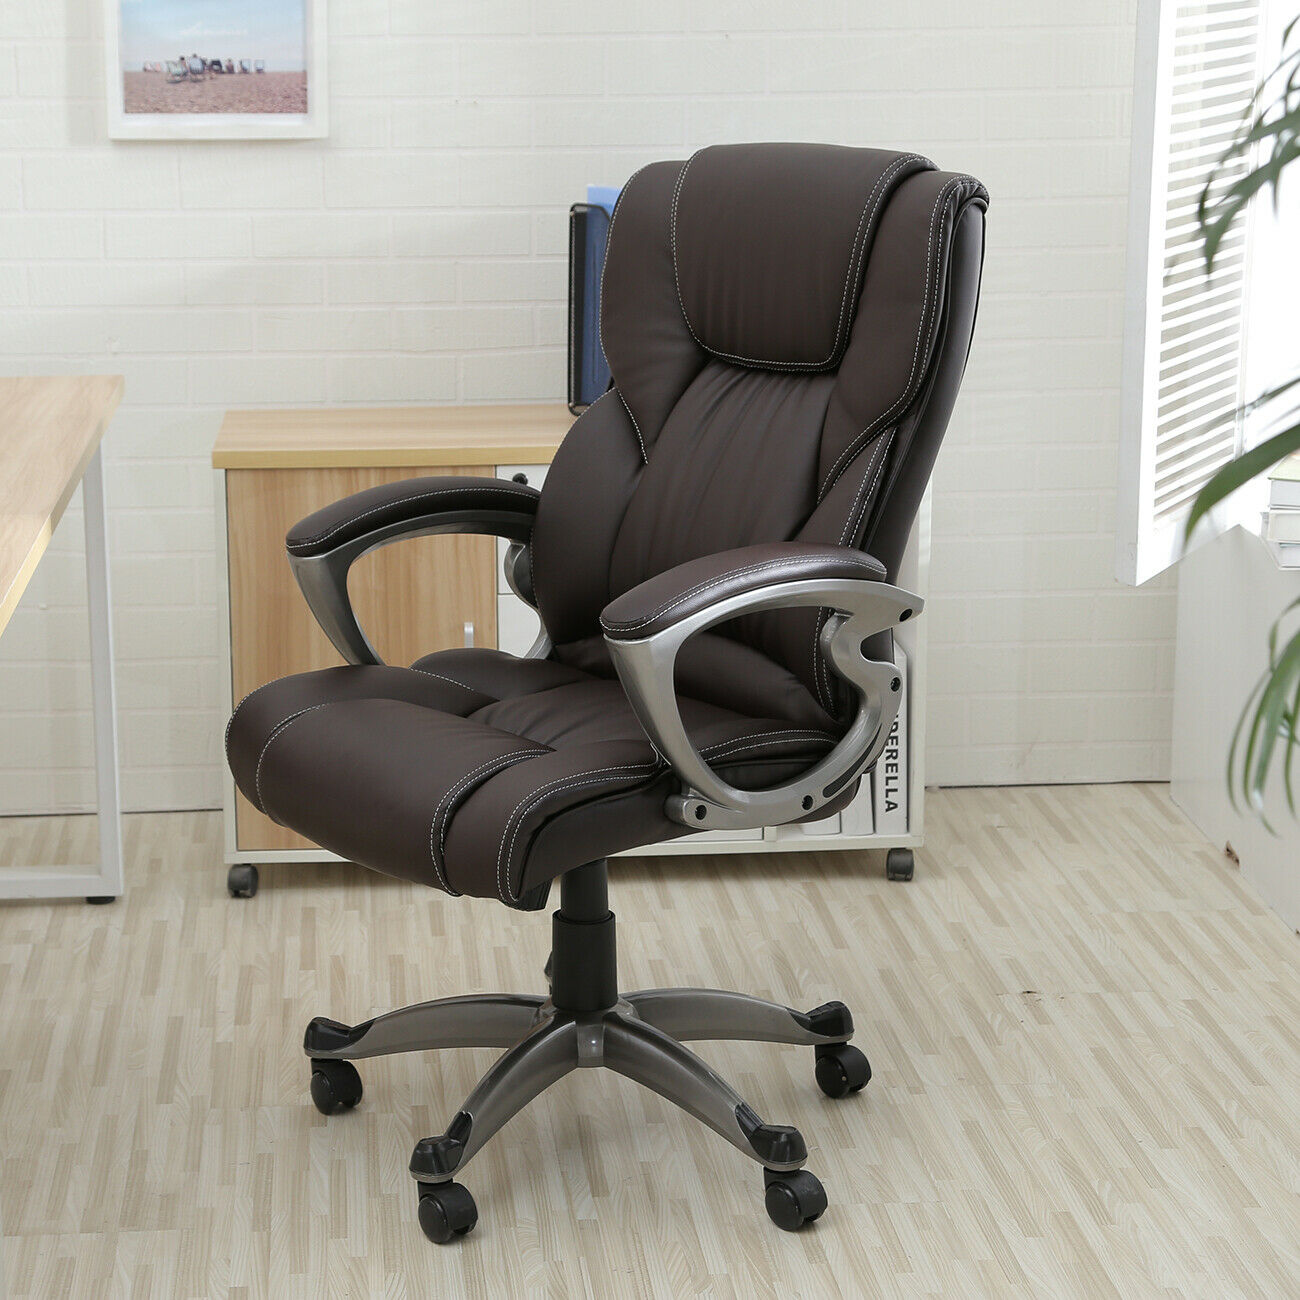 Staples Osgood 22298 Brown Bonded Leather High Back Office Chair For Sale Online Ebay